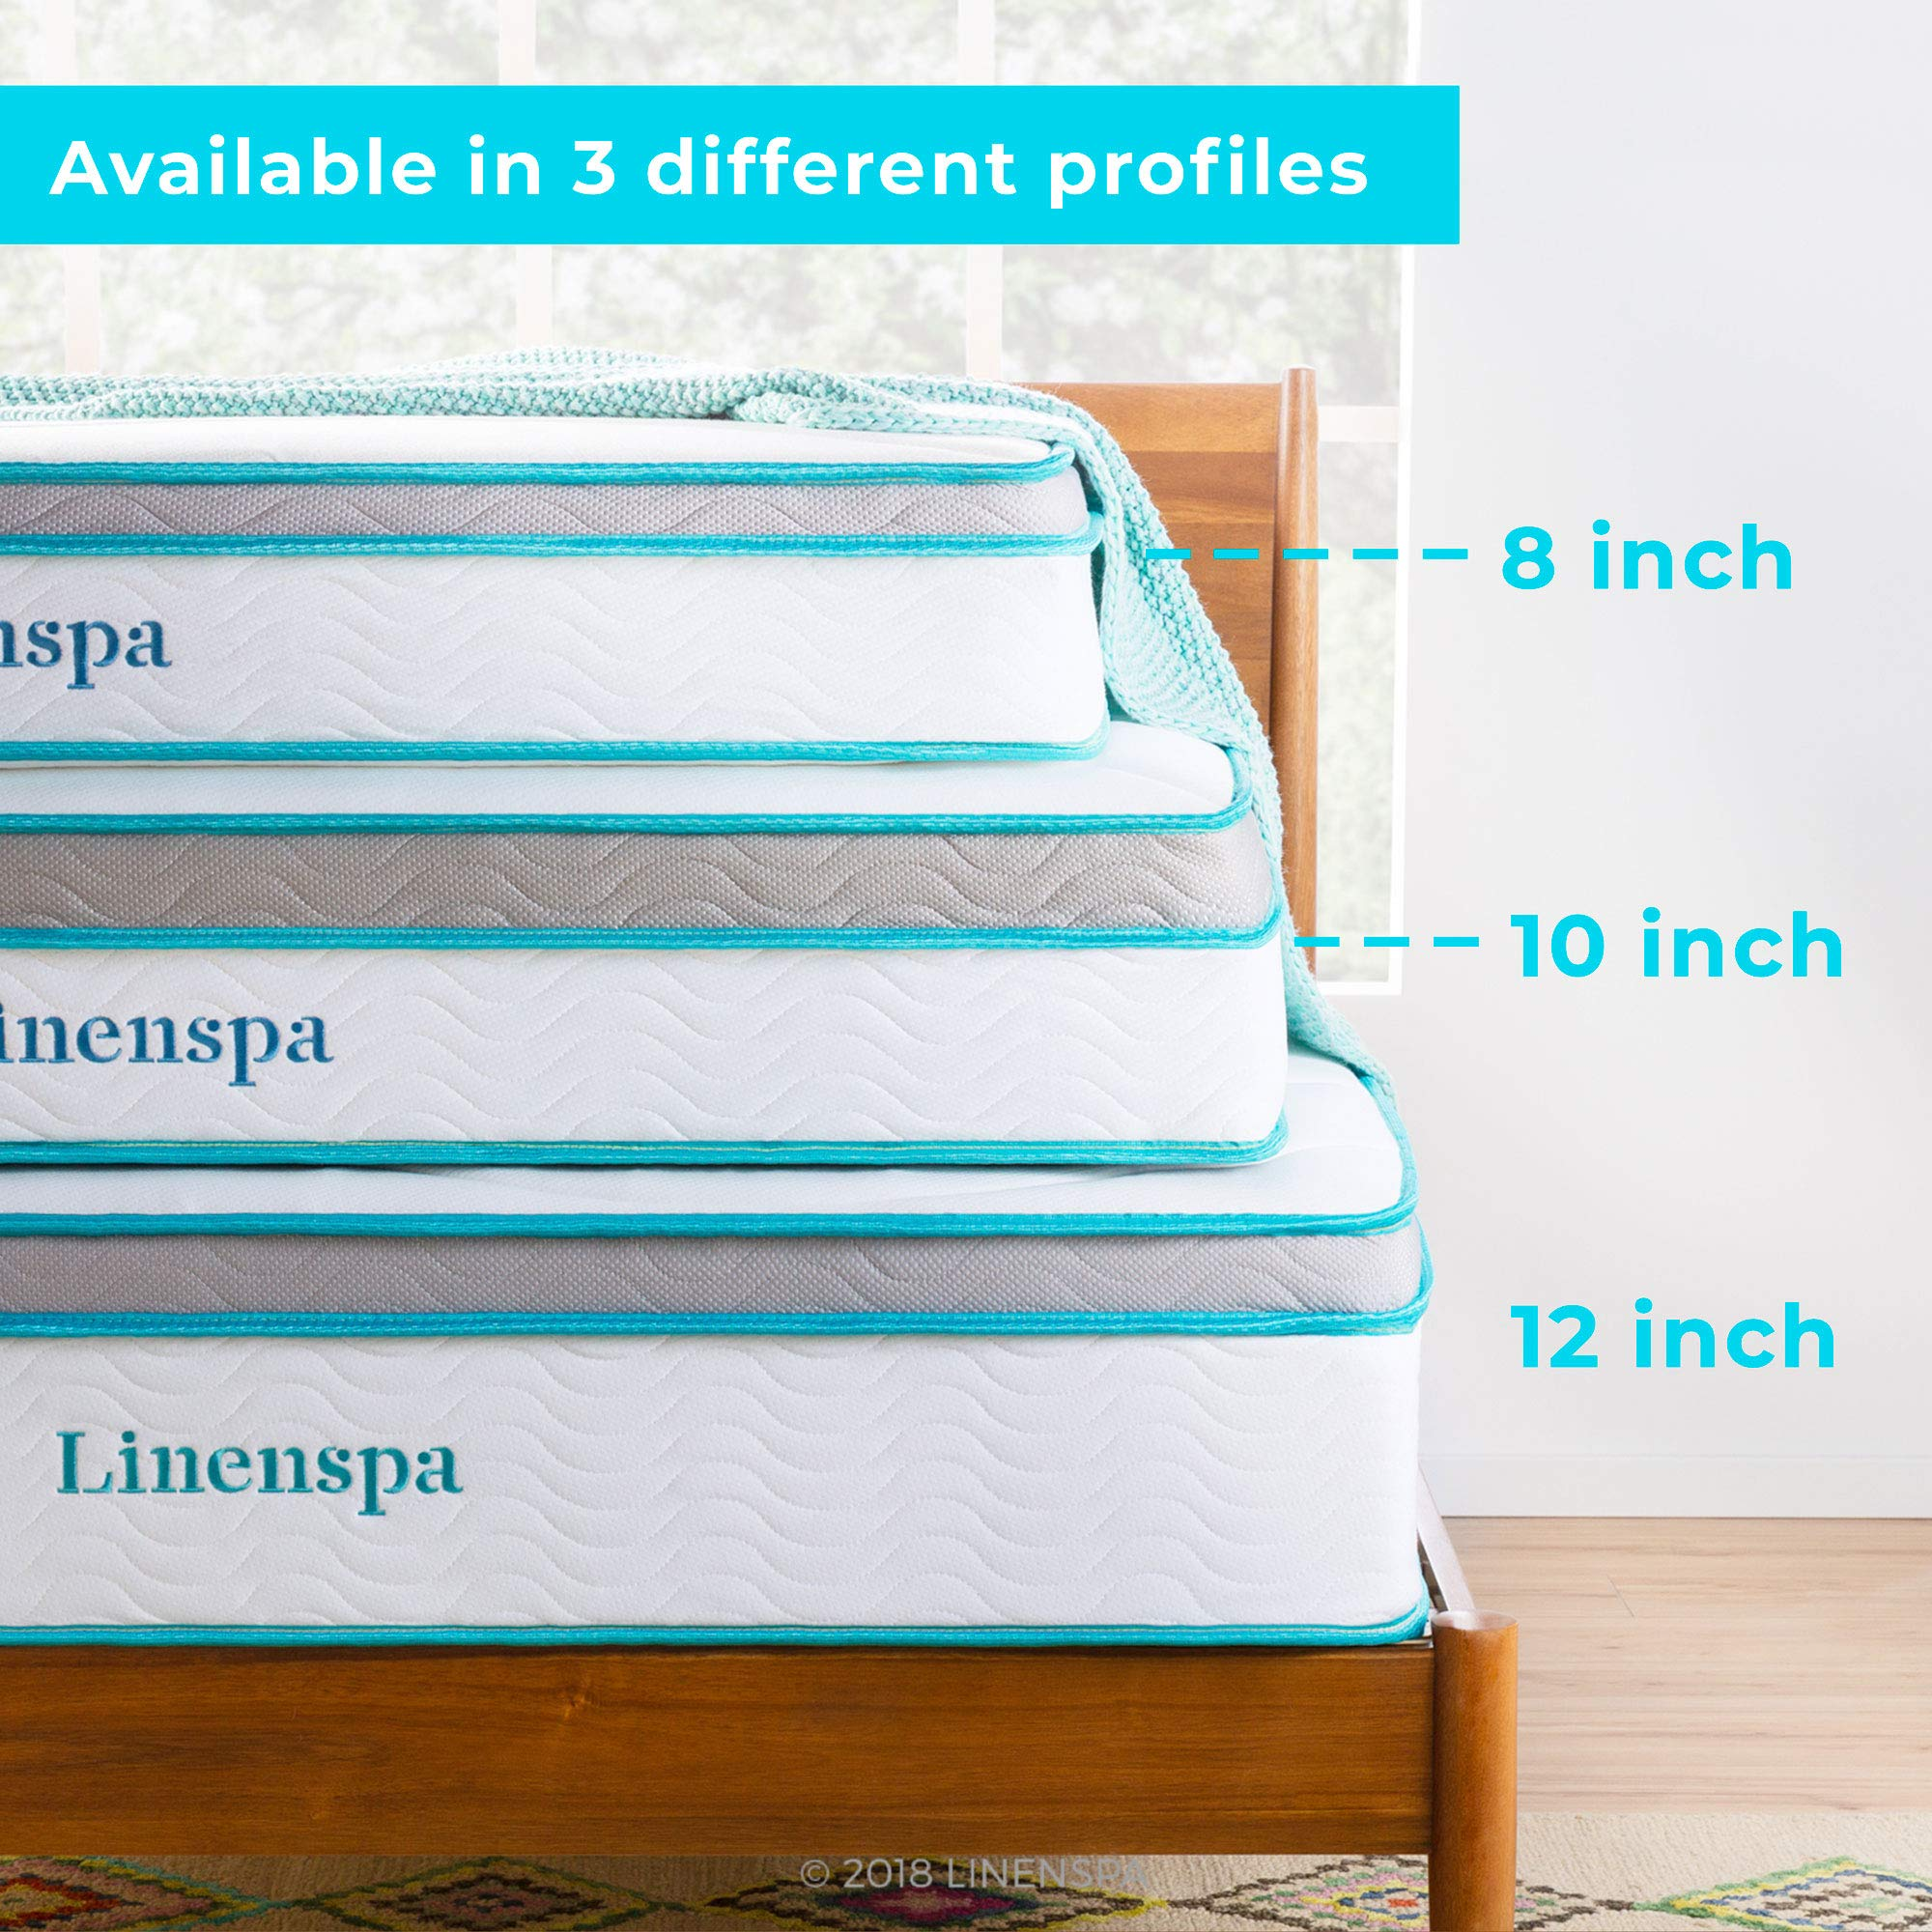 Linenspa LS10FFMFSP Bed Mattress Conventional, Full, 10-Inch by Linenspa (Image #5)